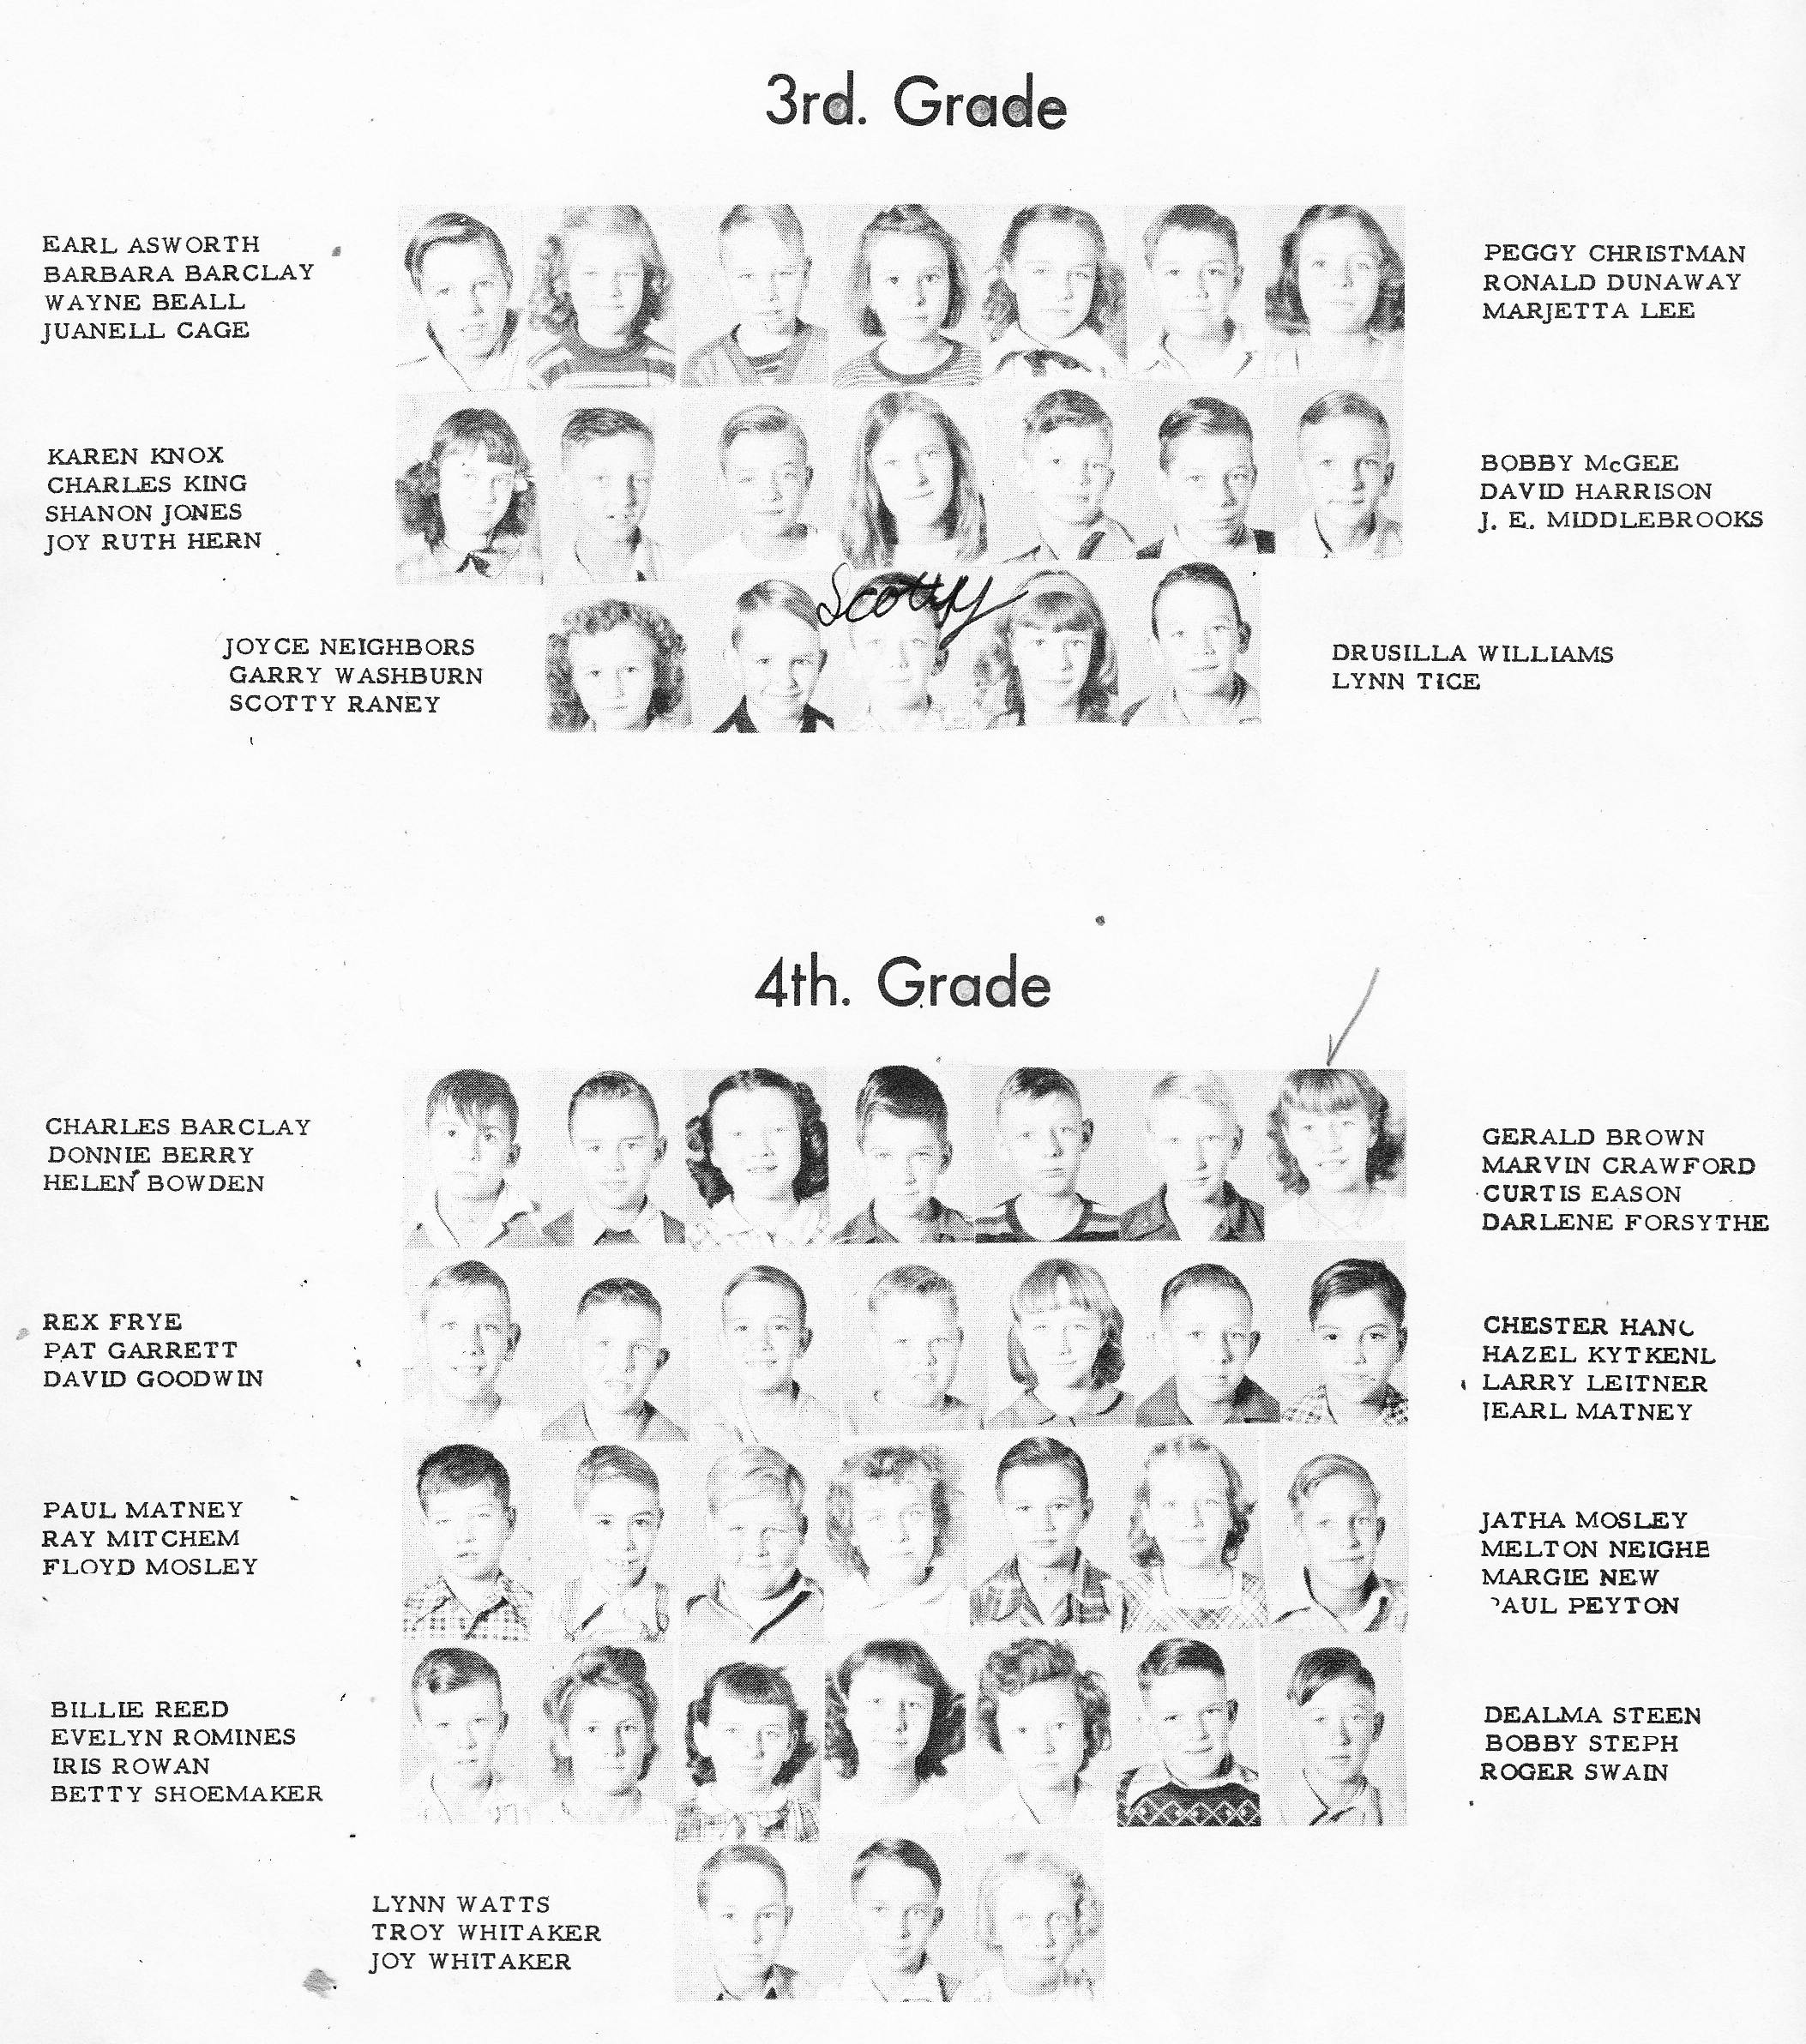 index of s q s for the alvord tx school yearbooks raney scotty 1949 alvord 3rd grade picture